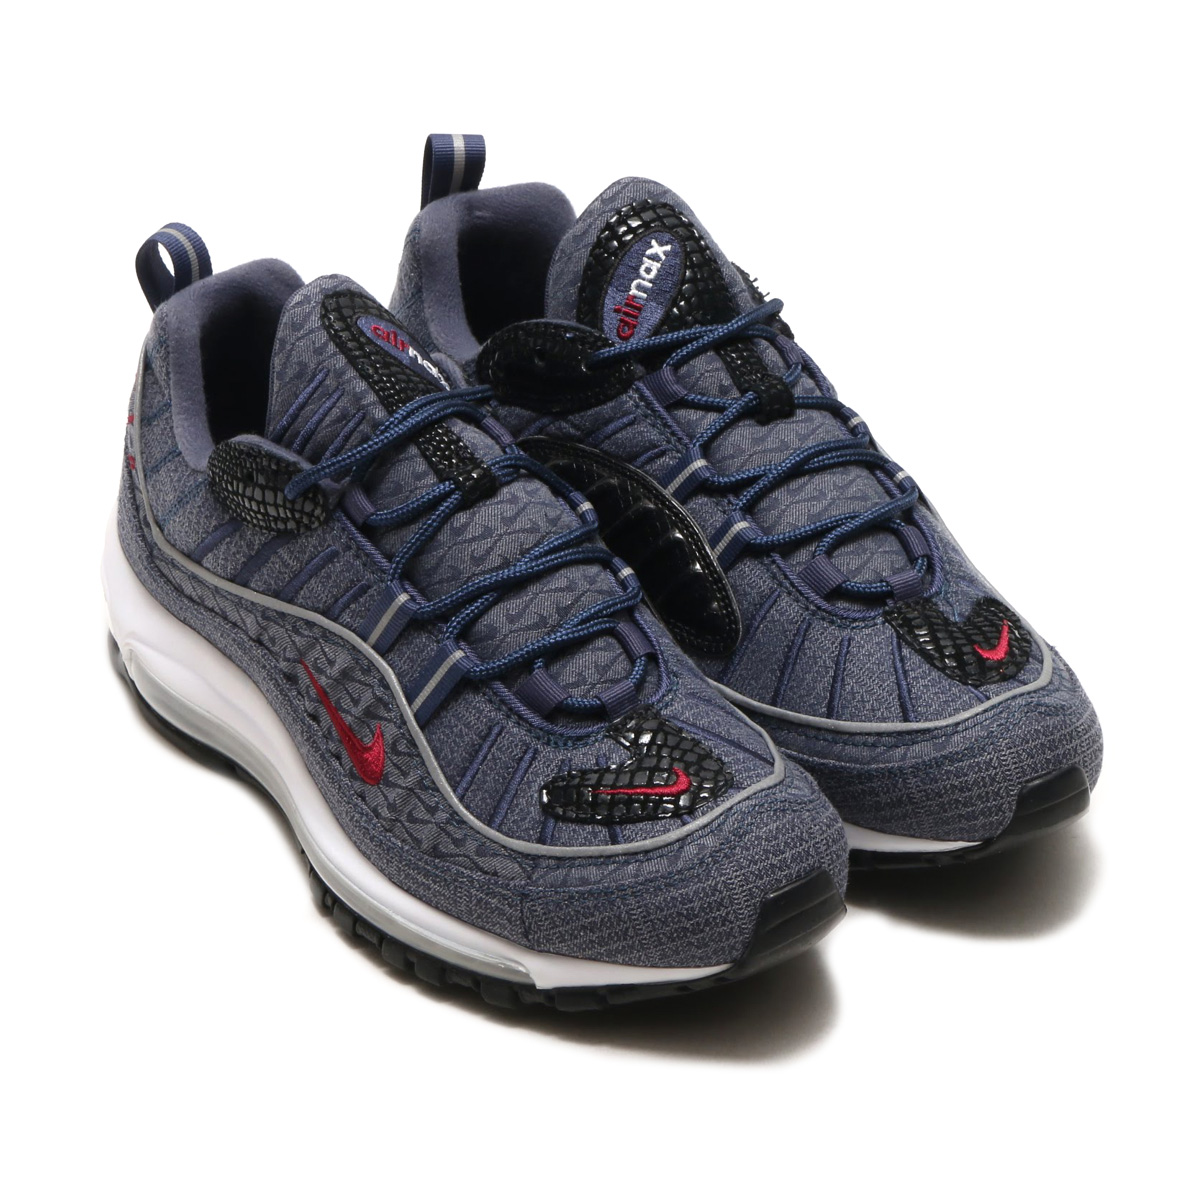 NIKE AIR MAX 98 QS(ナイキ エア マックス 98 QS)(THUNDER BLUE/TEAM RED-DIFFUSED BLUE)18SP-S